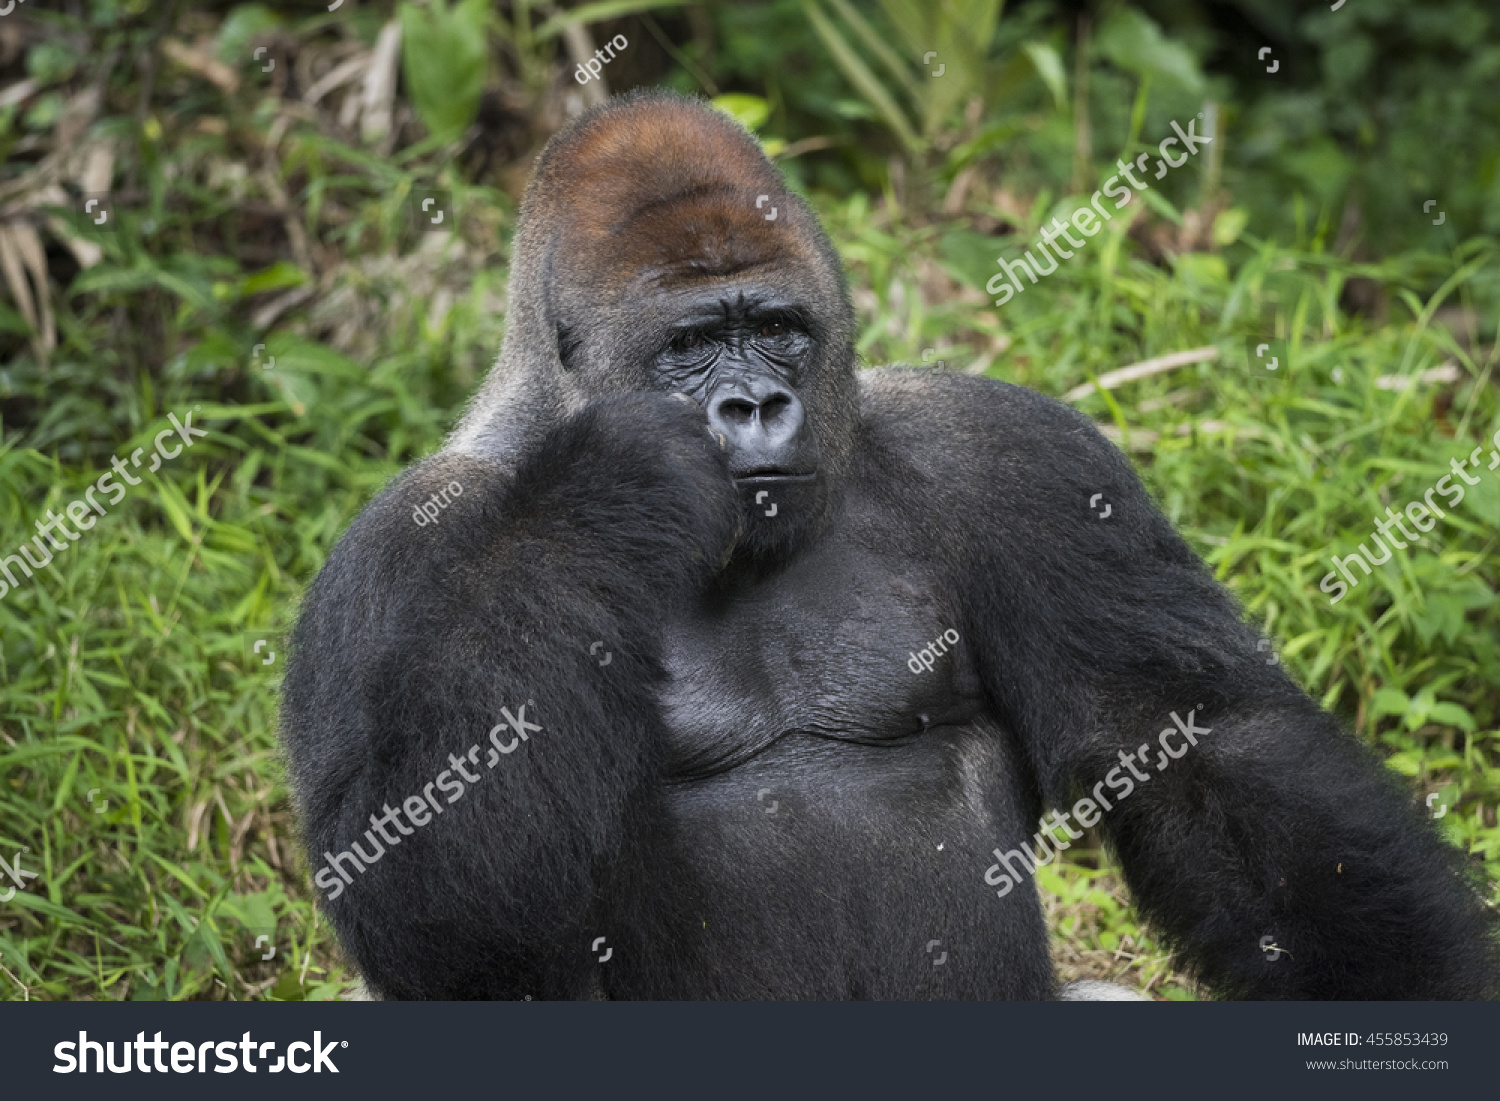 https://image.shutterstock.com/z/stock-photo-silverback-gorilla-on-confusing-thought-pose-455853439.jpg